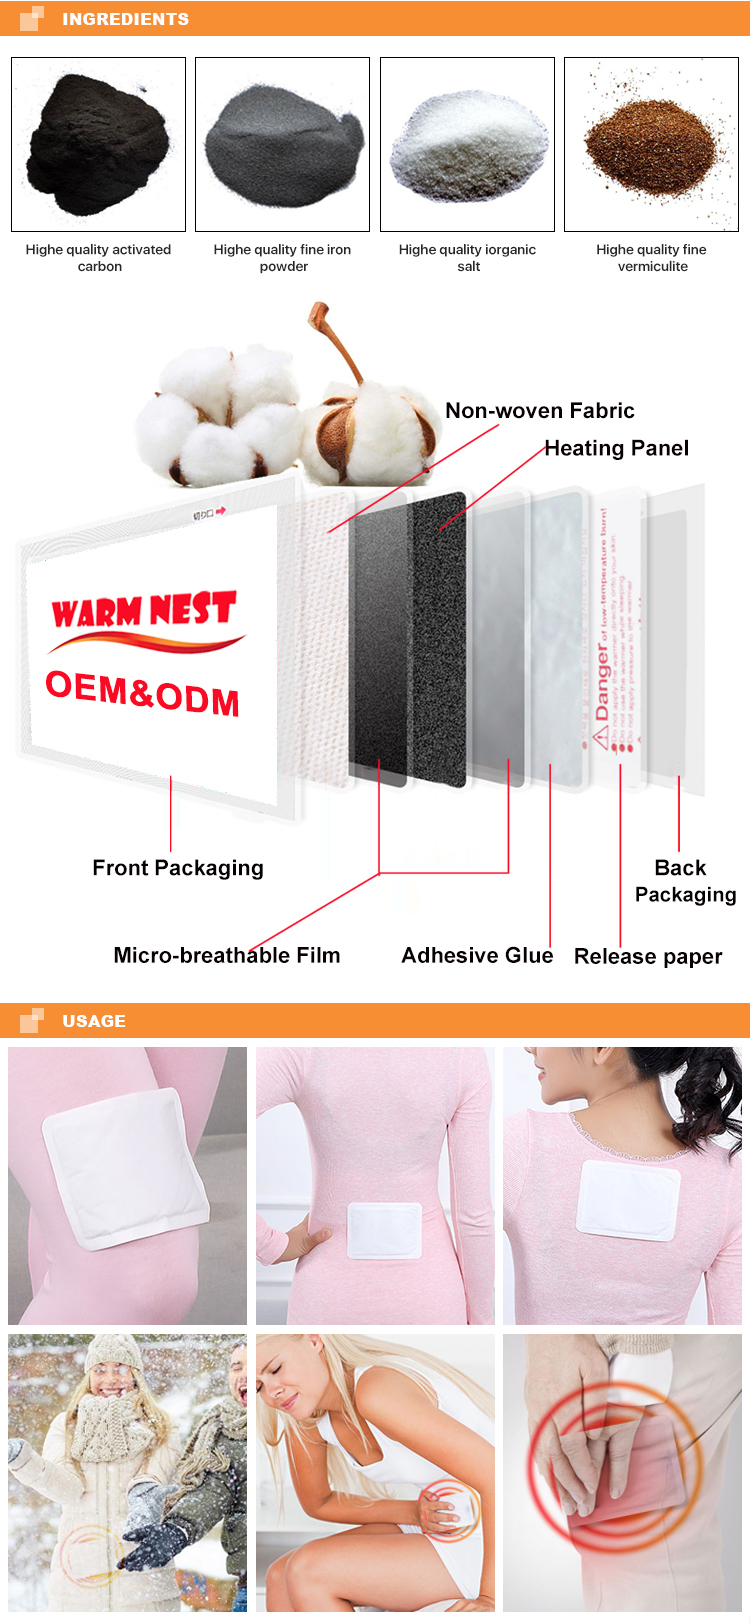 Adhesive Self Heat Menstrual Cramp Relief Body Warmer Patch